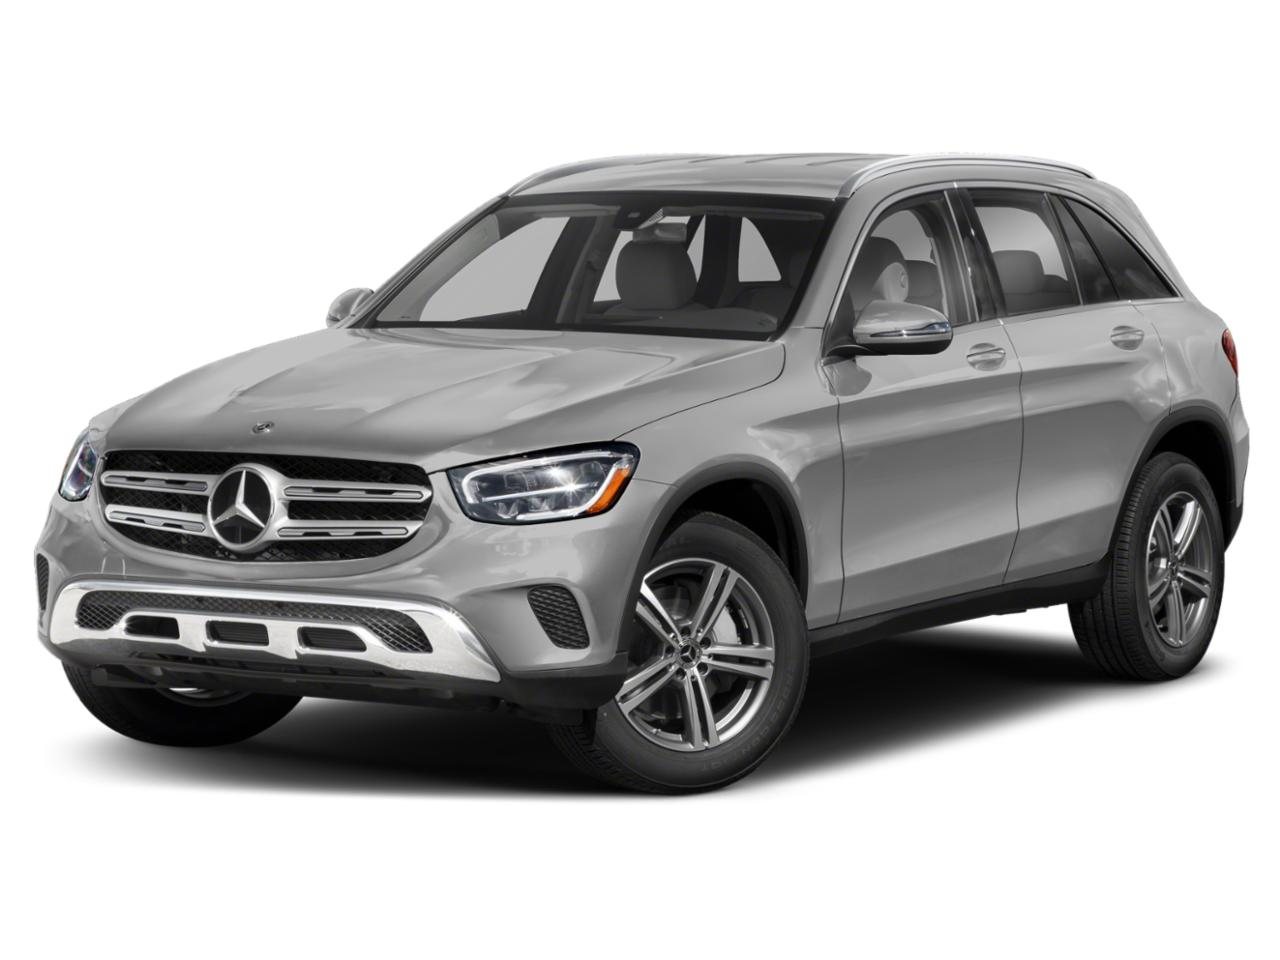 2020 Mercedes-Benz GLC Vehicle Photo in Appleton, WI 54913